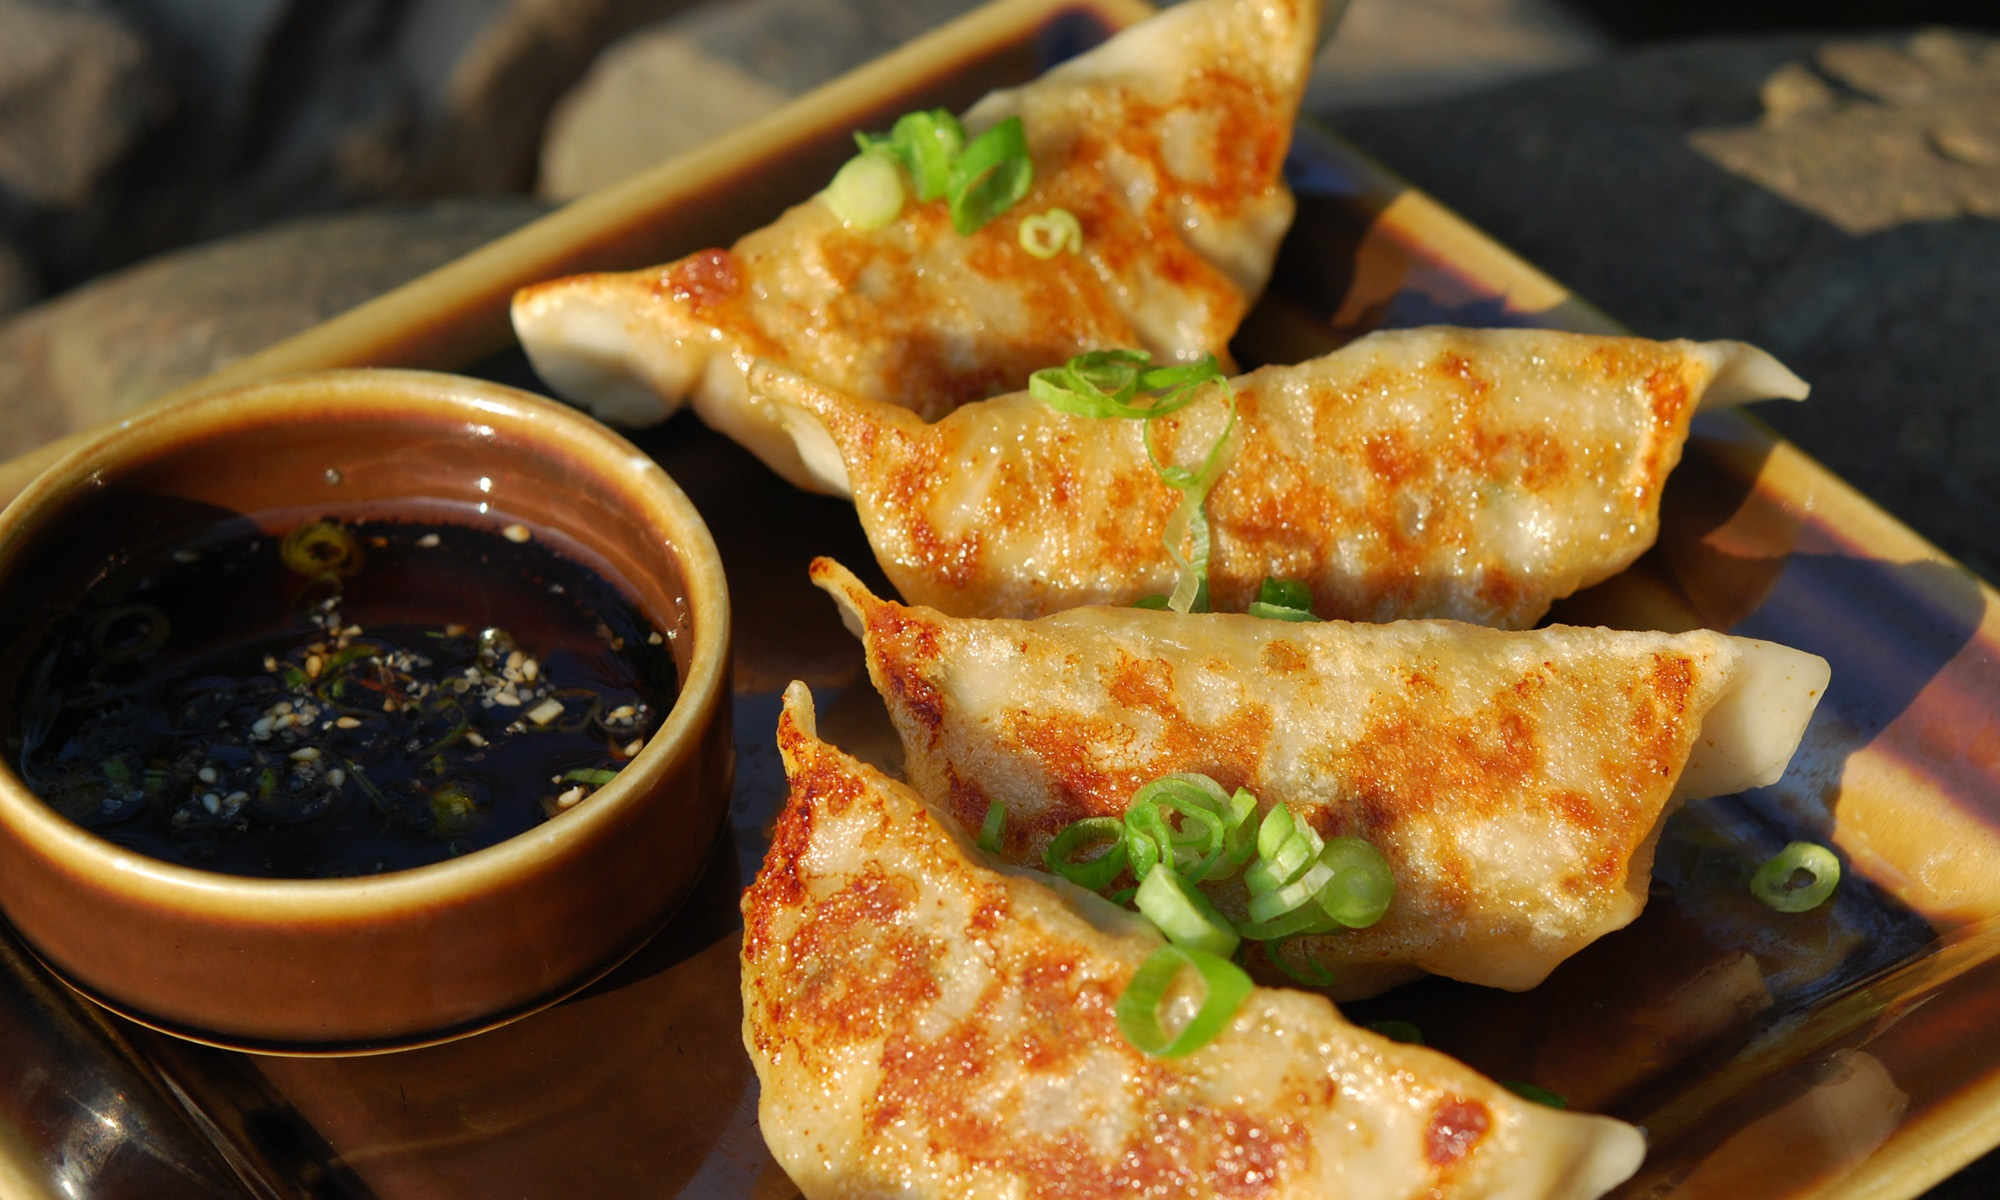 Fried gyoza dumplings.